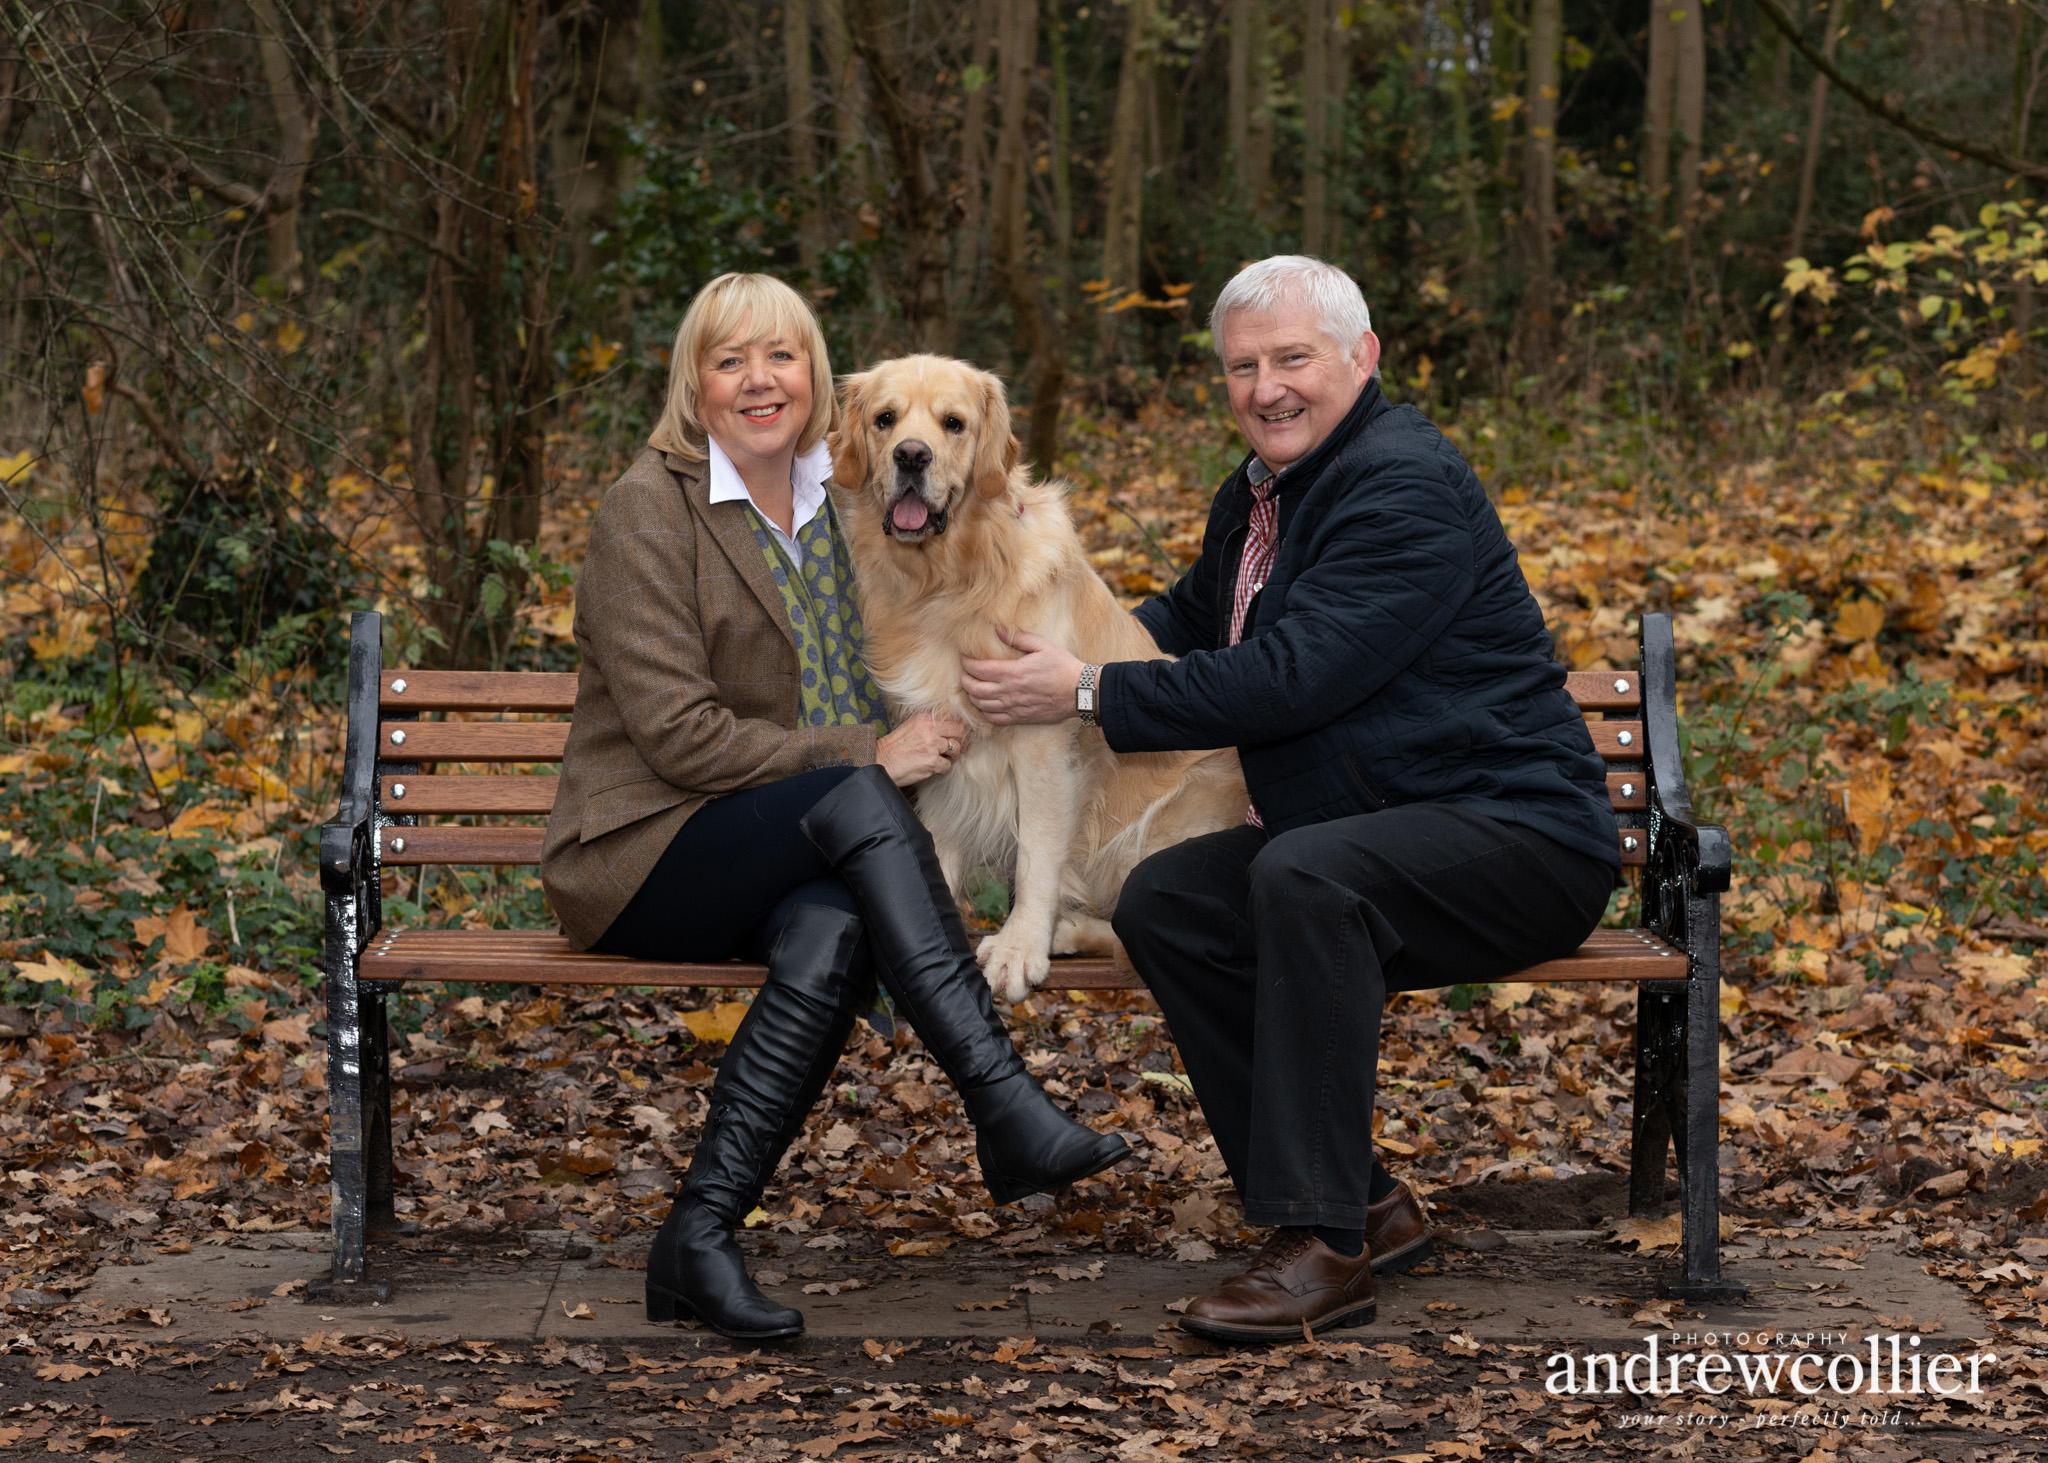 Environmental dog portrait photograph of a Golden Retriever and his owners in parkland in Chester, Cheshire